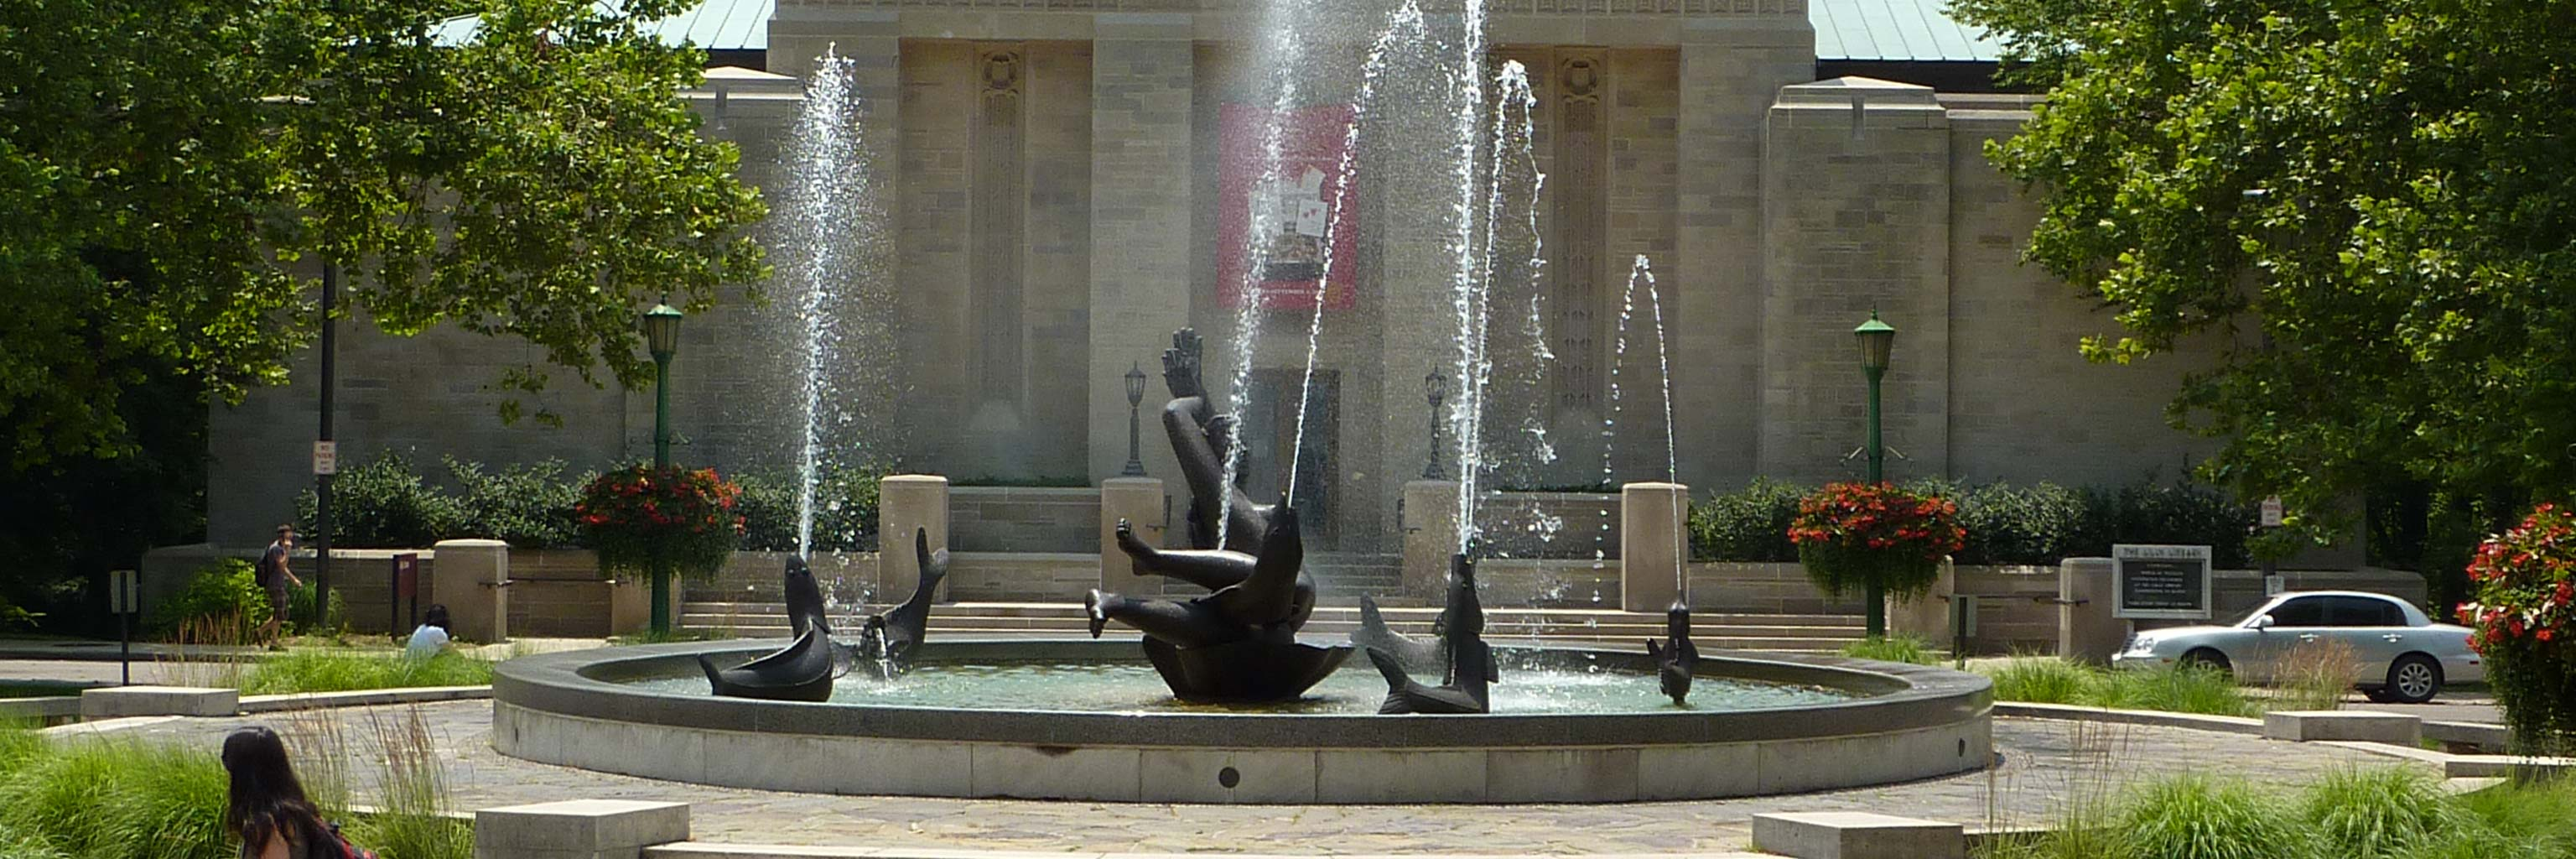 Showalter fountain on Indiana University campus